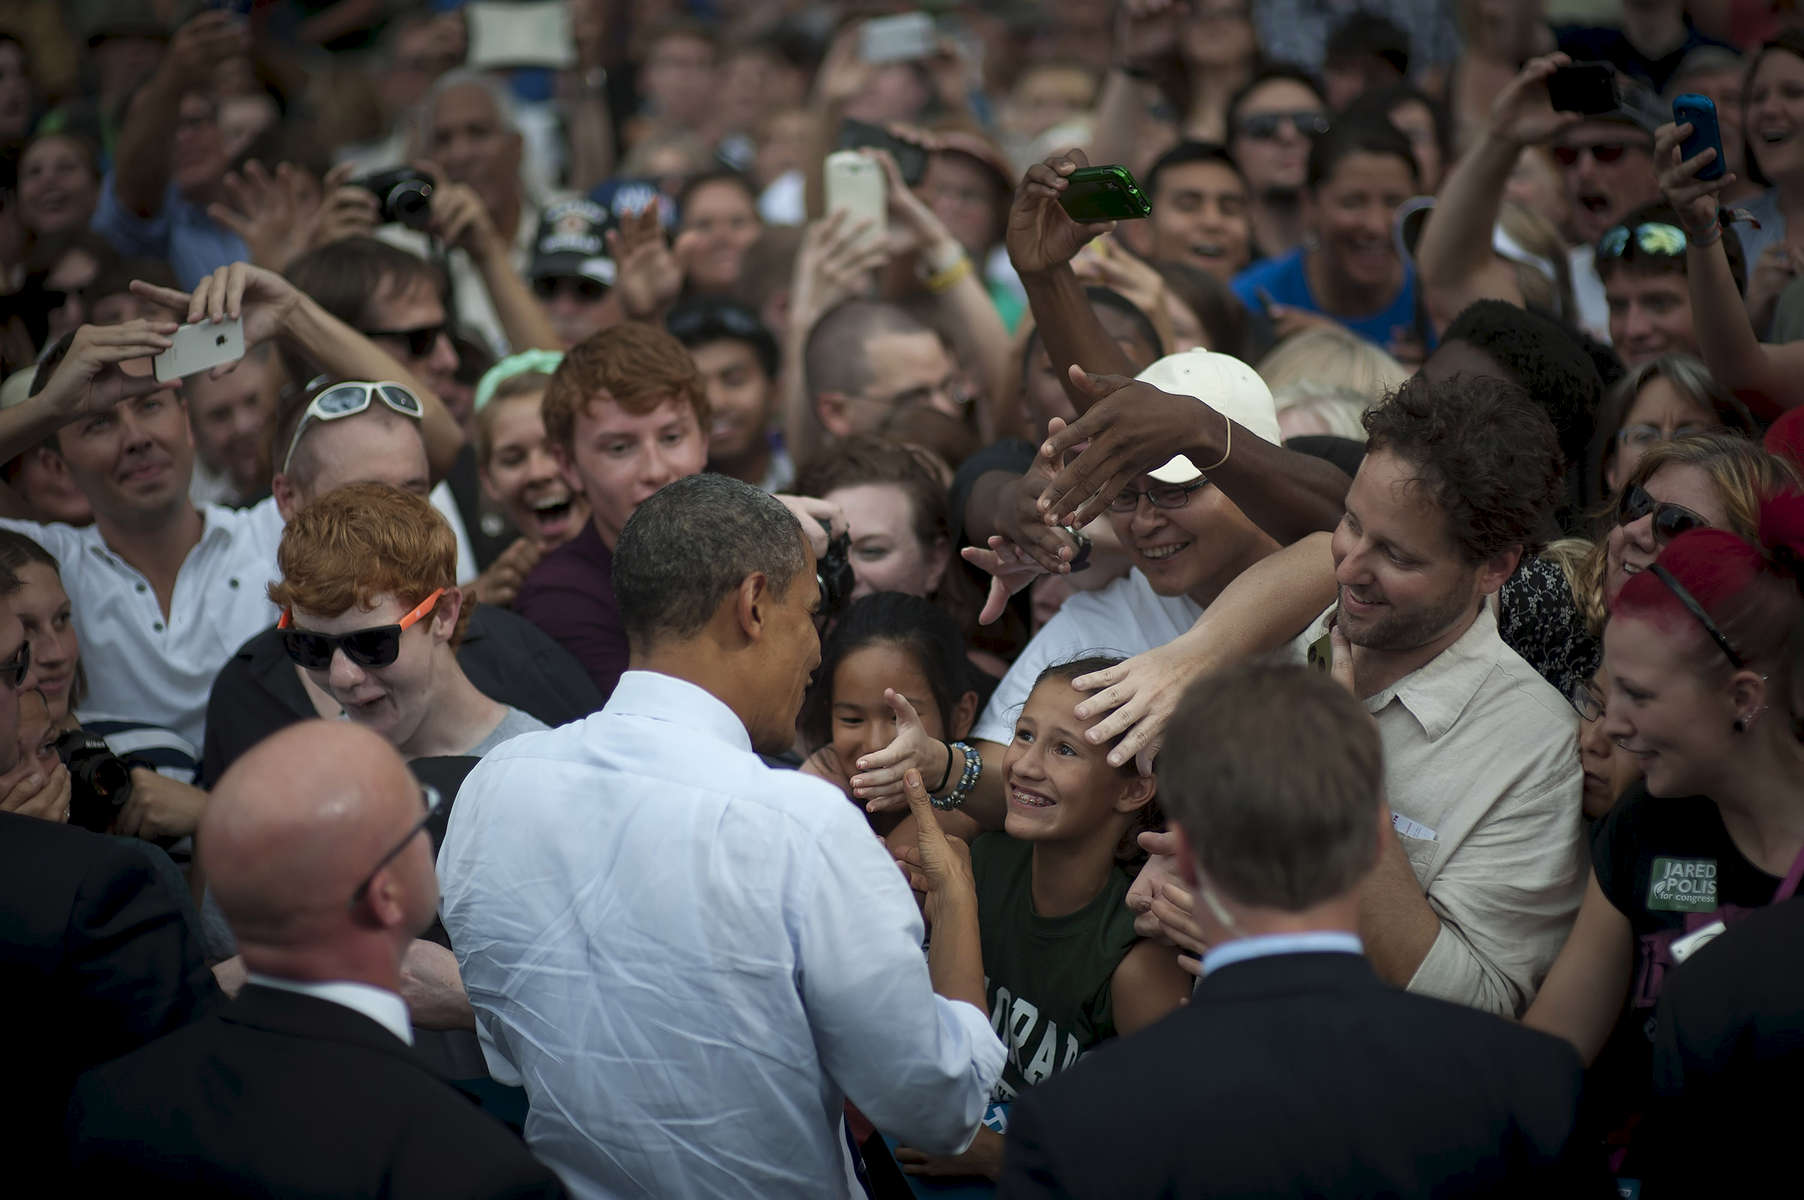 August 28, 2012- Fort Collins, CO:  A young girl grins up at President Barack Obama at a campaign event in Fort Collins, CO.  (Scout Tufankjian for Obama for America/Polaris)